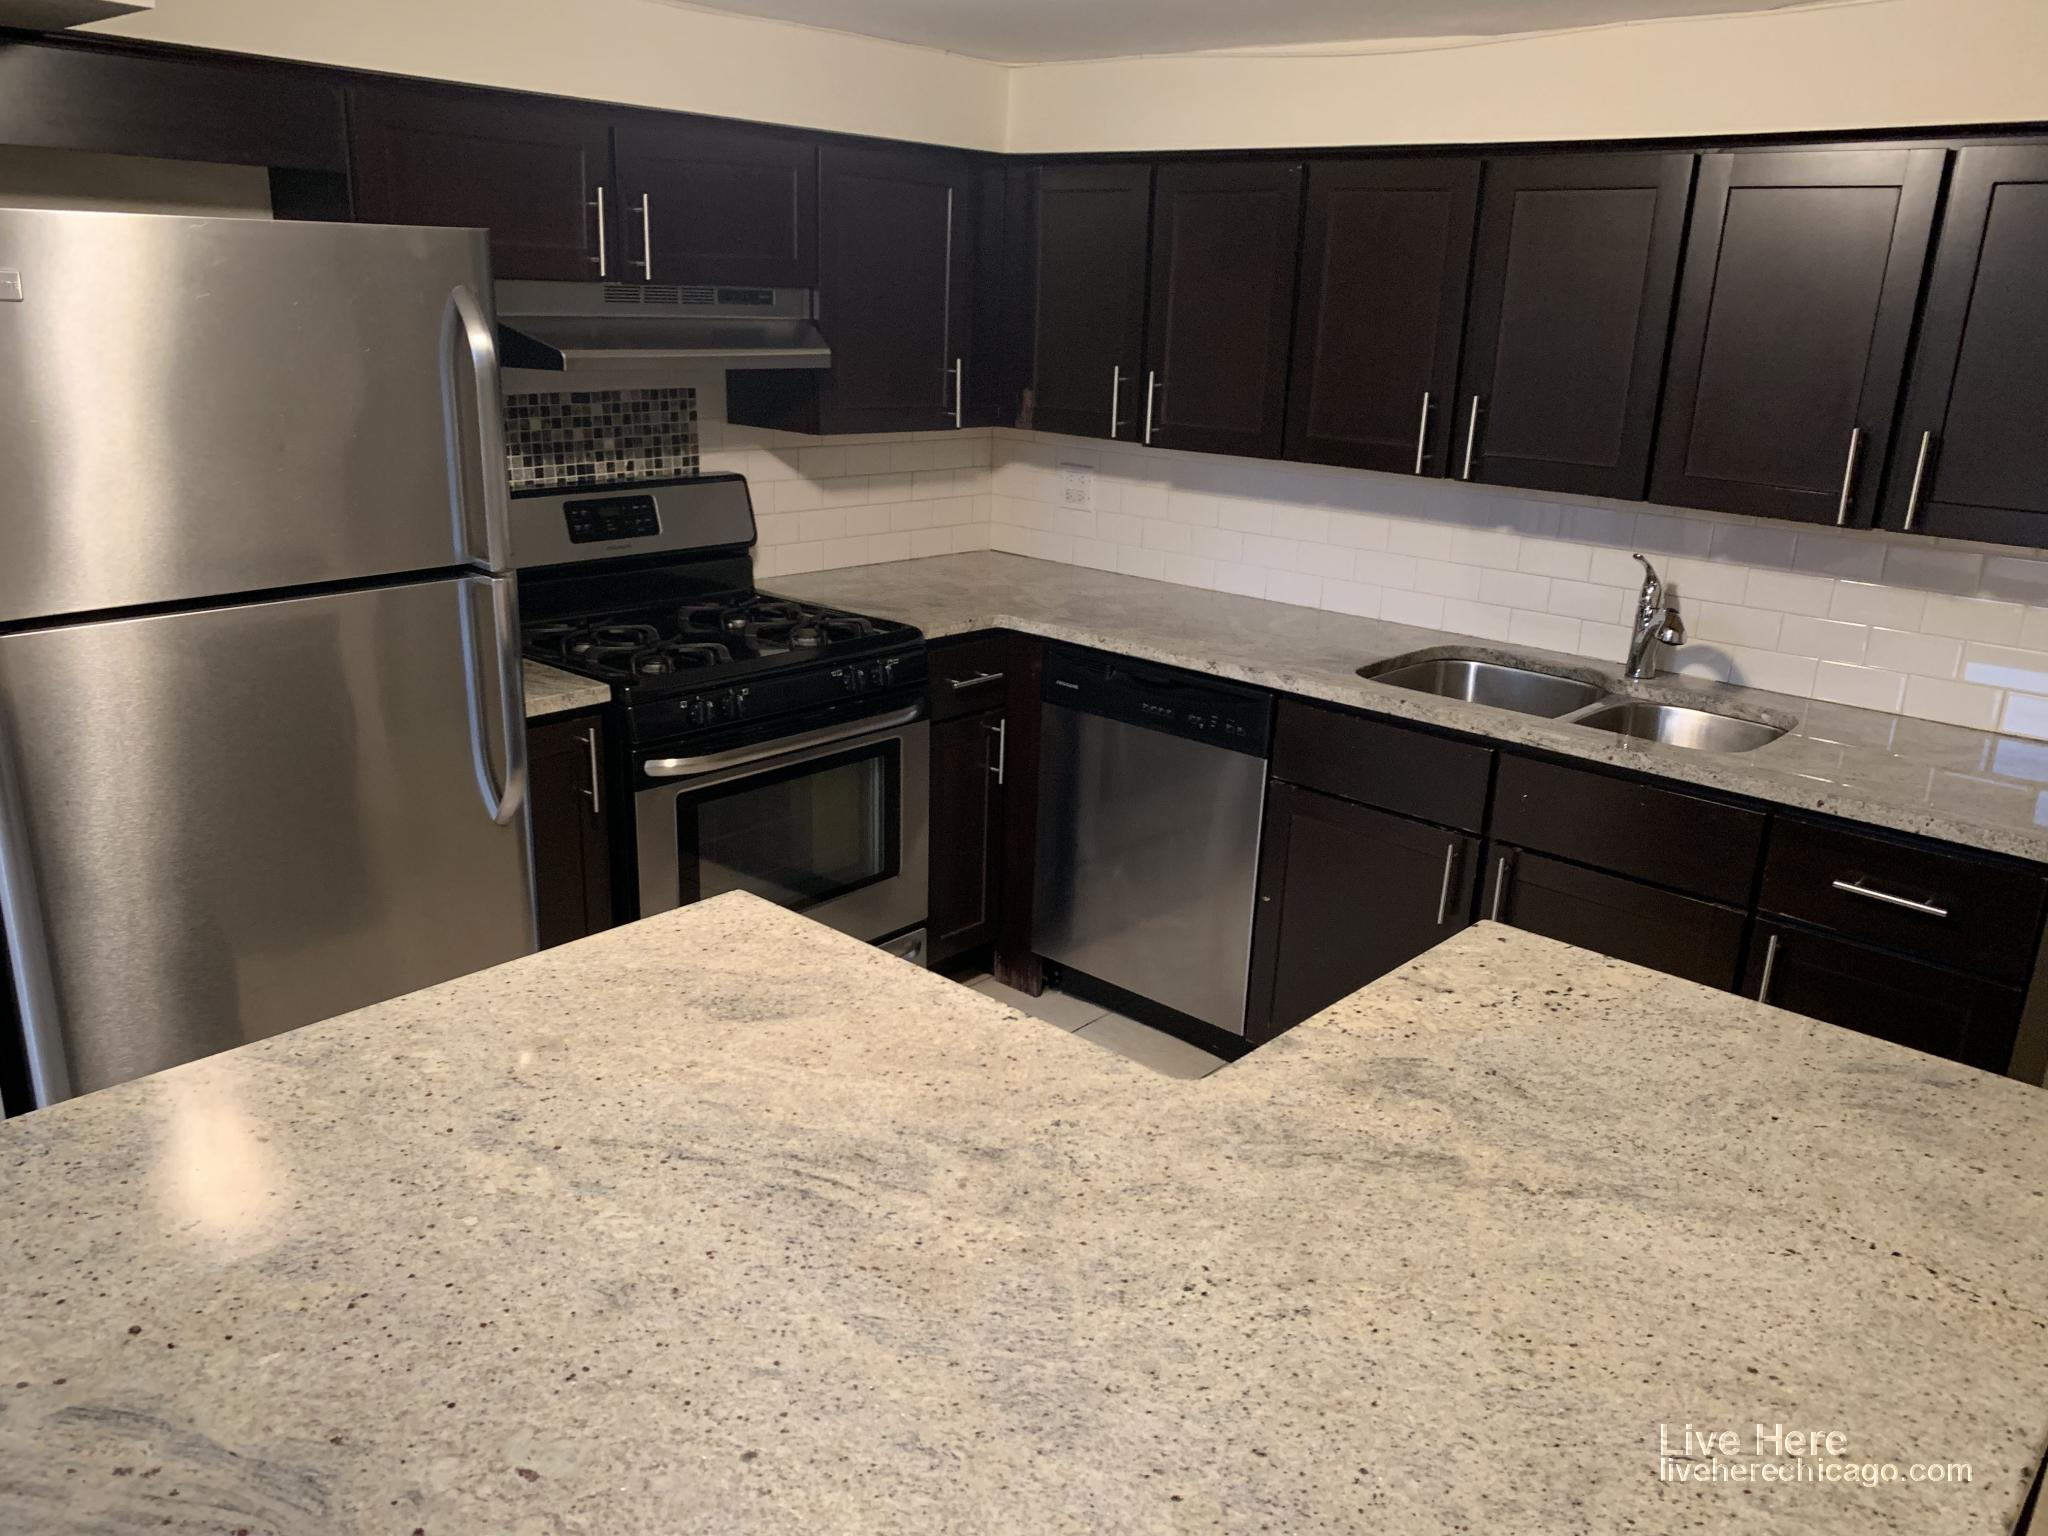 871 West Lill - 3450USD / month